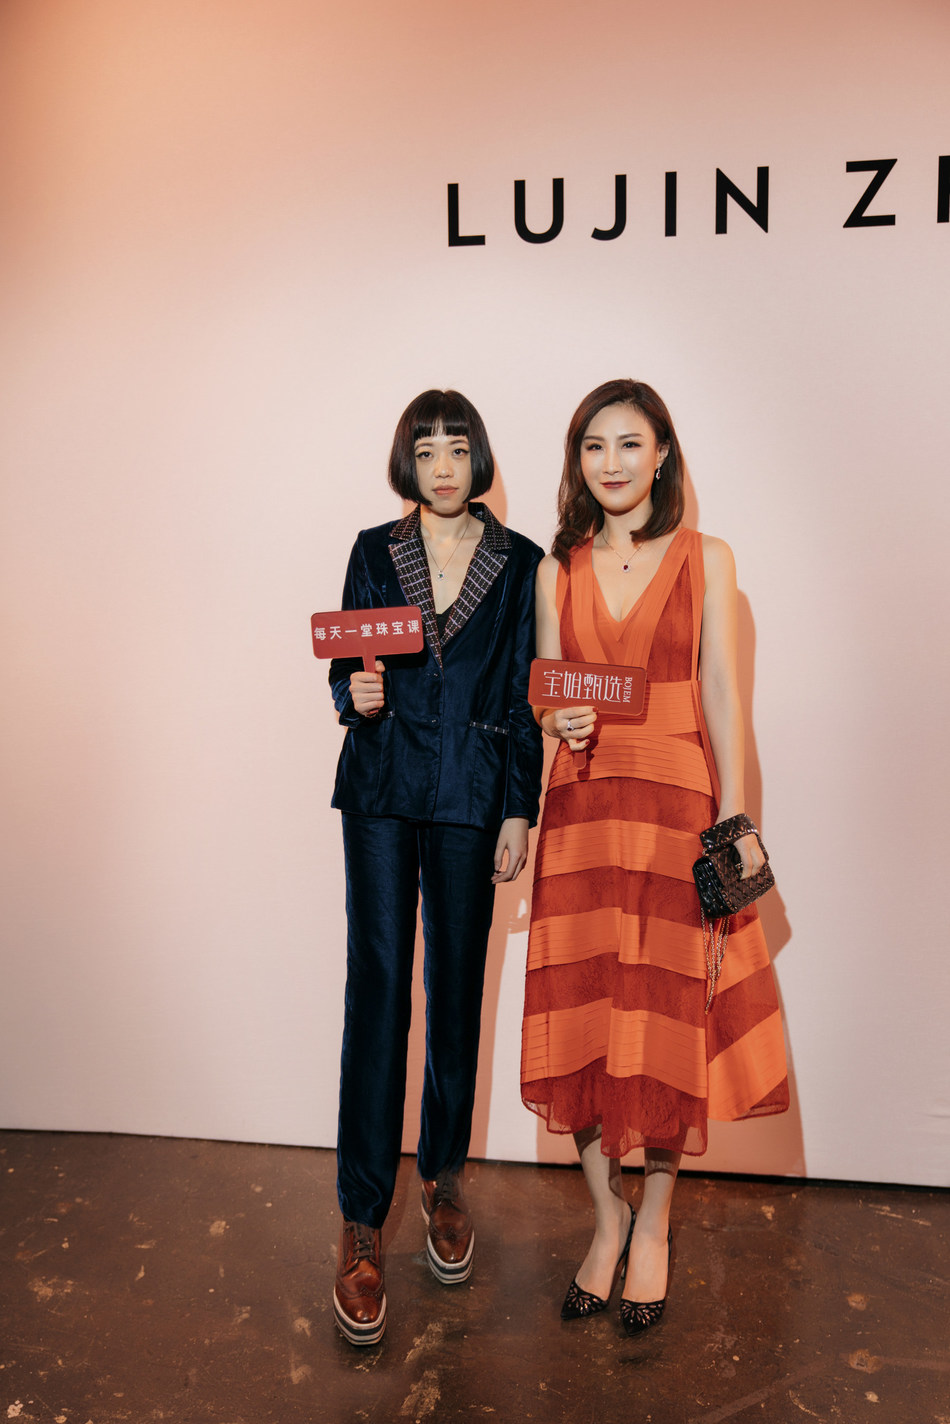 Joyee Zhao and designer Zhang Lujin photo [show] LUJING ZHANG's 18 autumn and winter new products